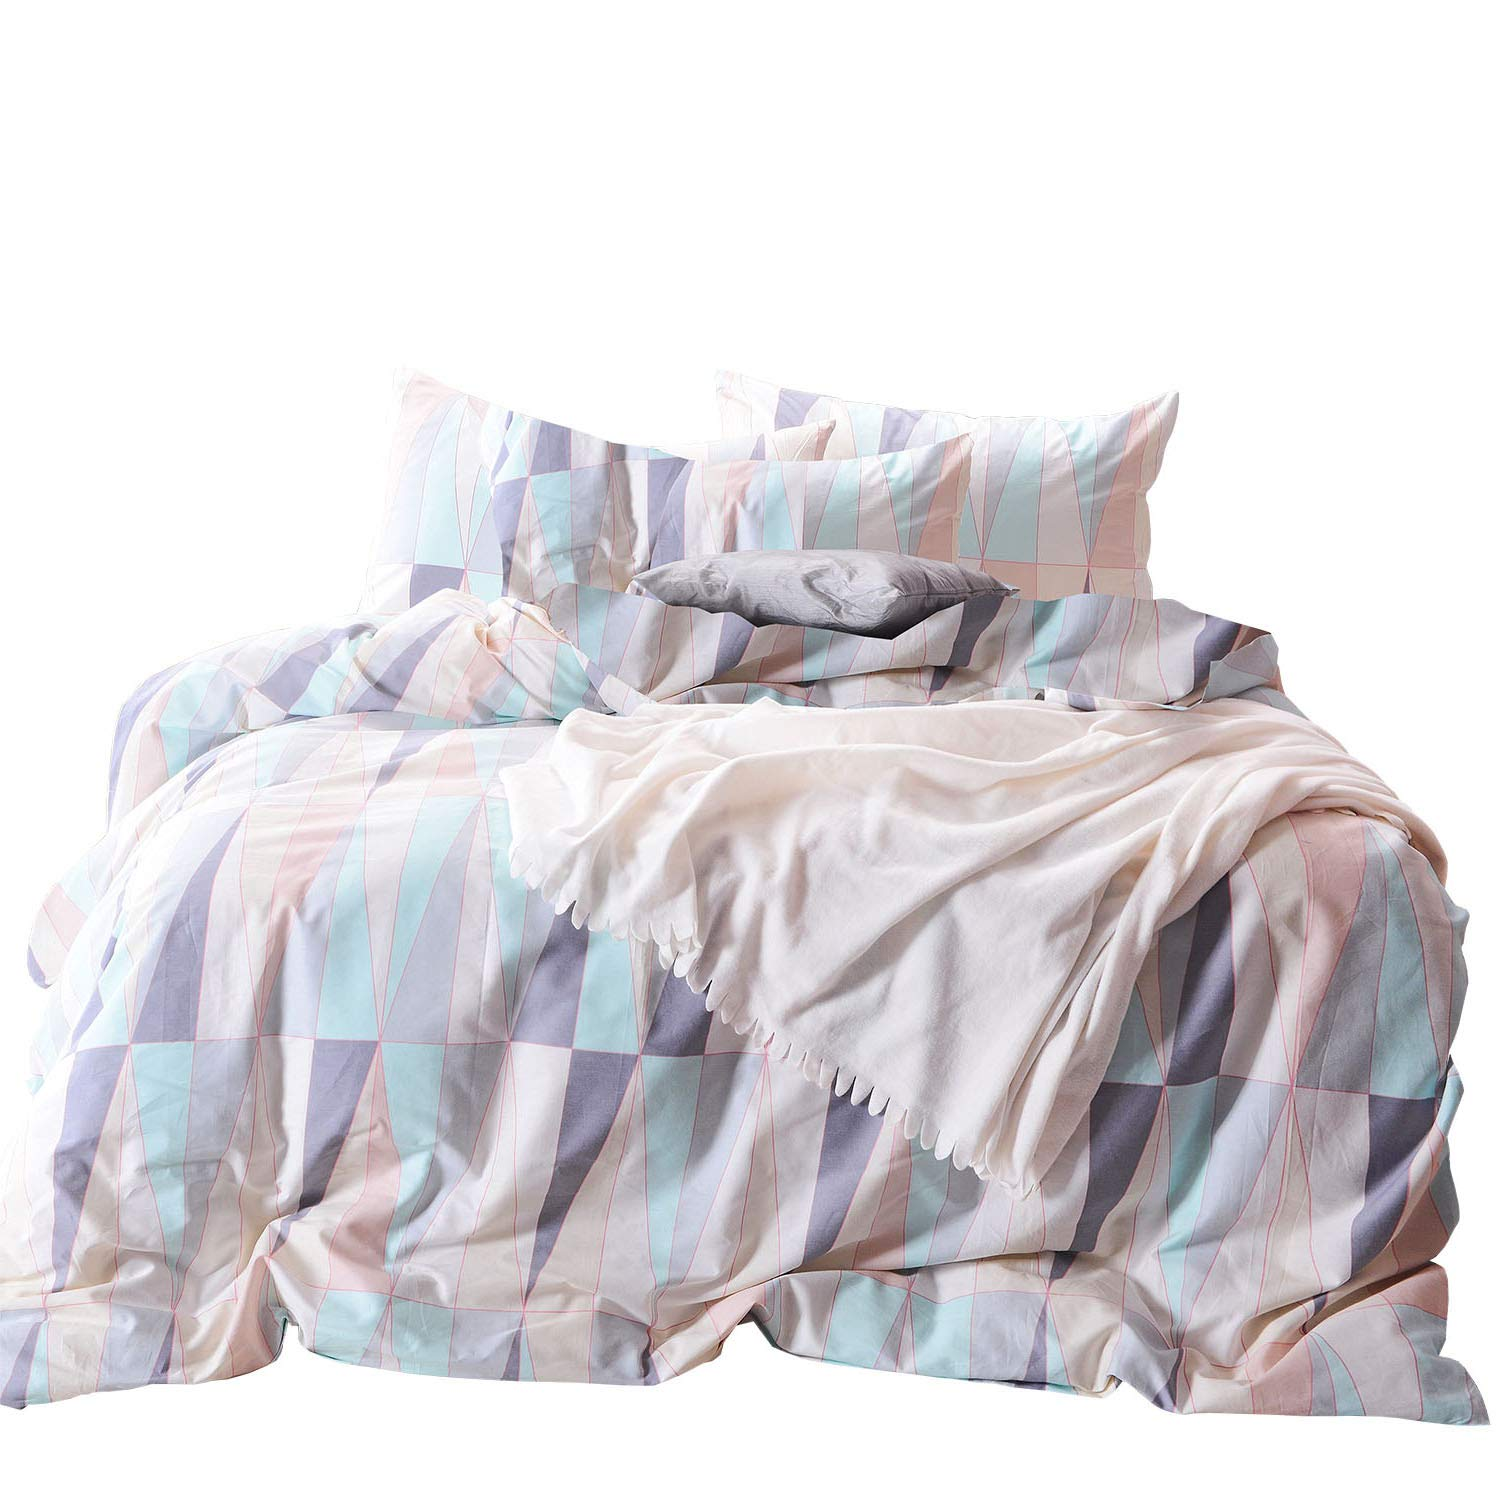 Wake In Cloud - Geometric Comforter Set, 100% Cotton Fabric with Soft Microfiber Fill Bedding, Abstract Triangle Modern Pattern Printed (3pcs, Twin Size)